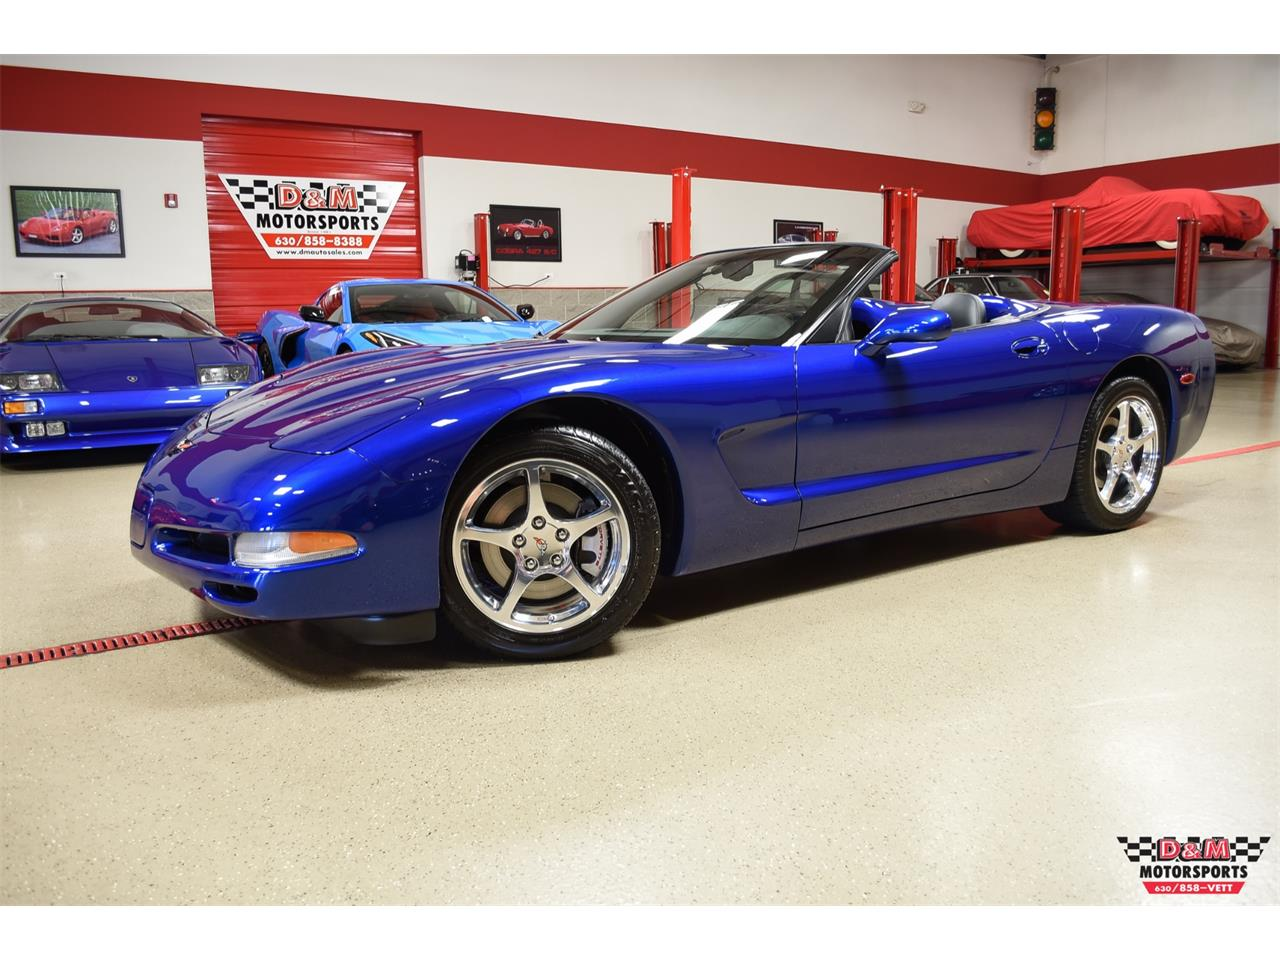 2002 Chevrolet Corvette (CC-1391133) for sale in Glen Ellyn, Illinois